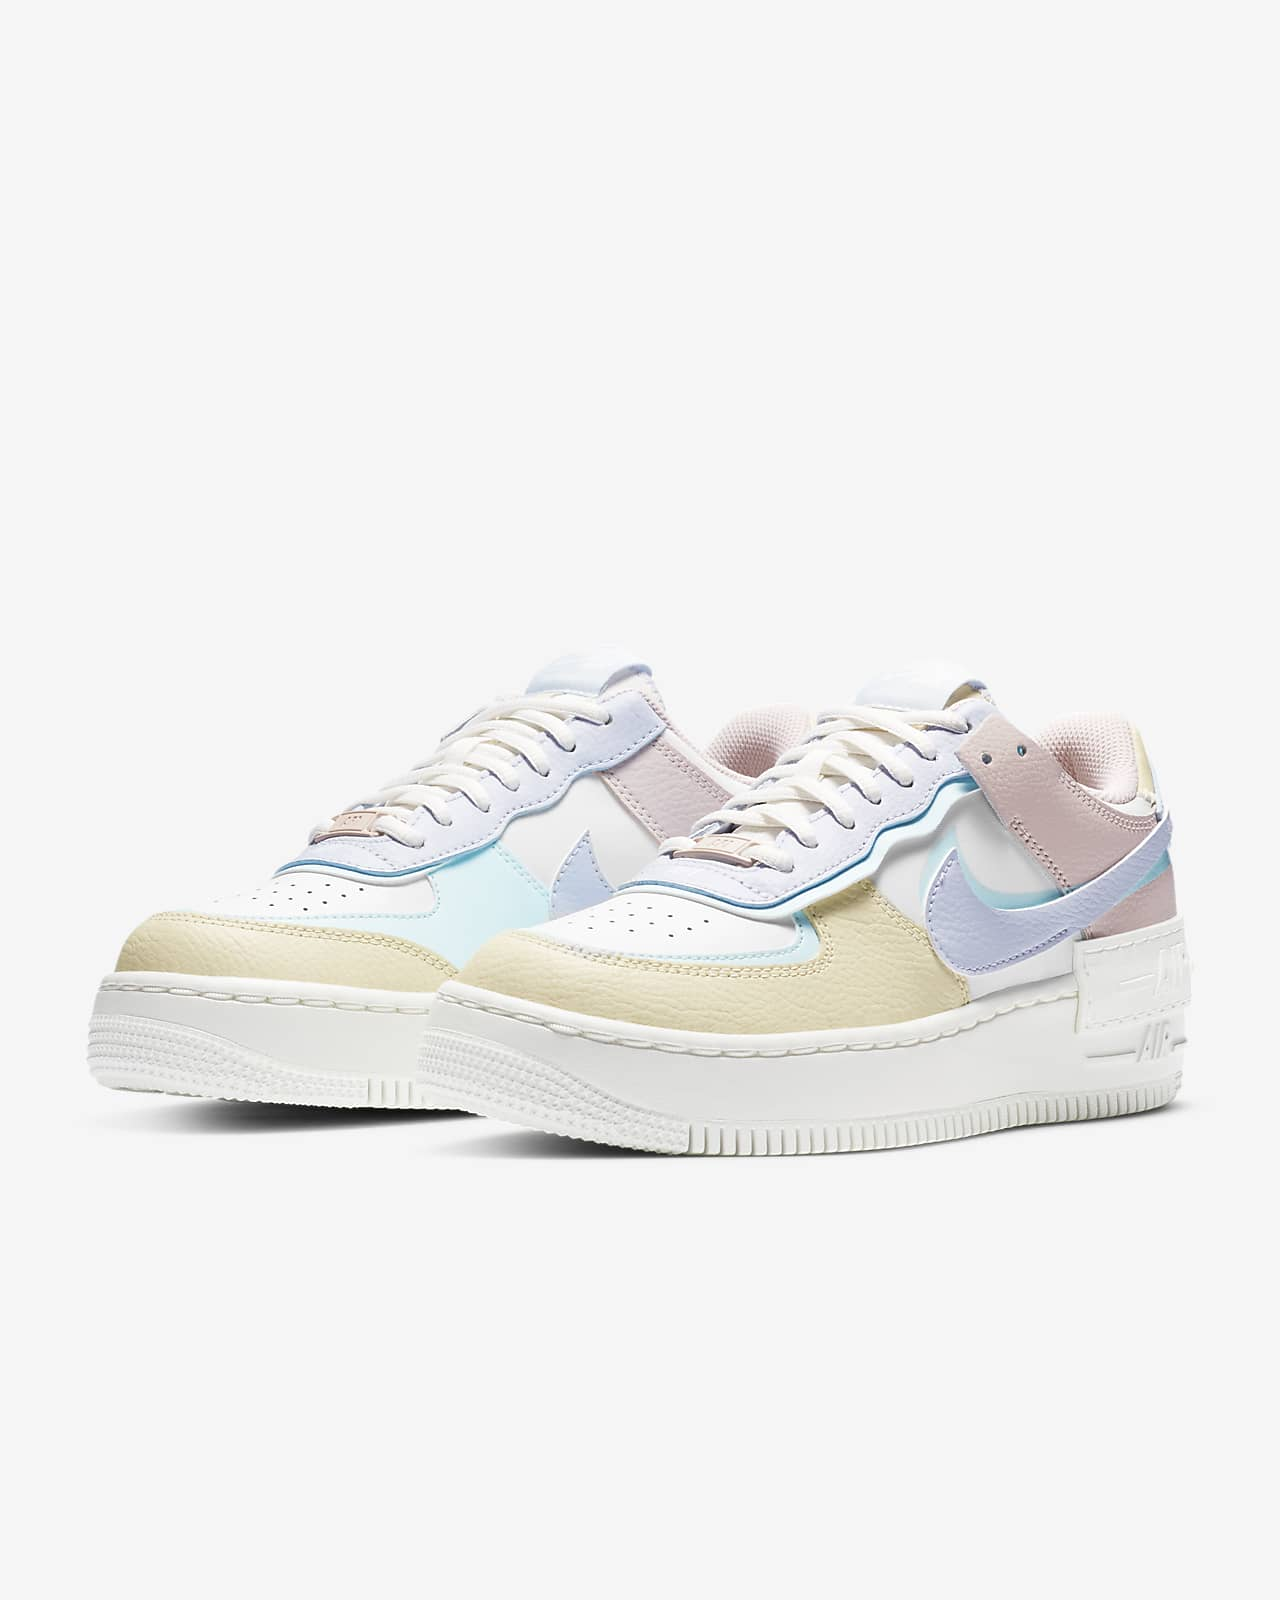 nike air force 1 shadow - mujer zapatillas blancas